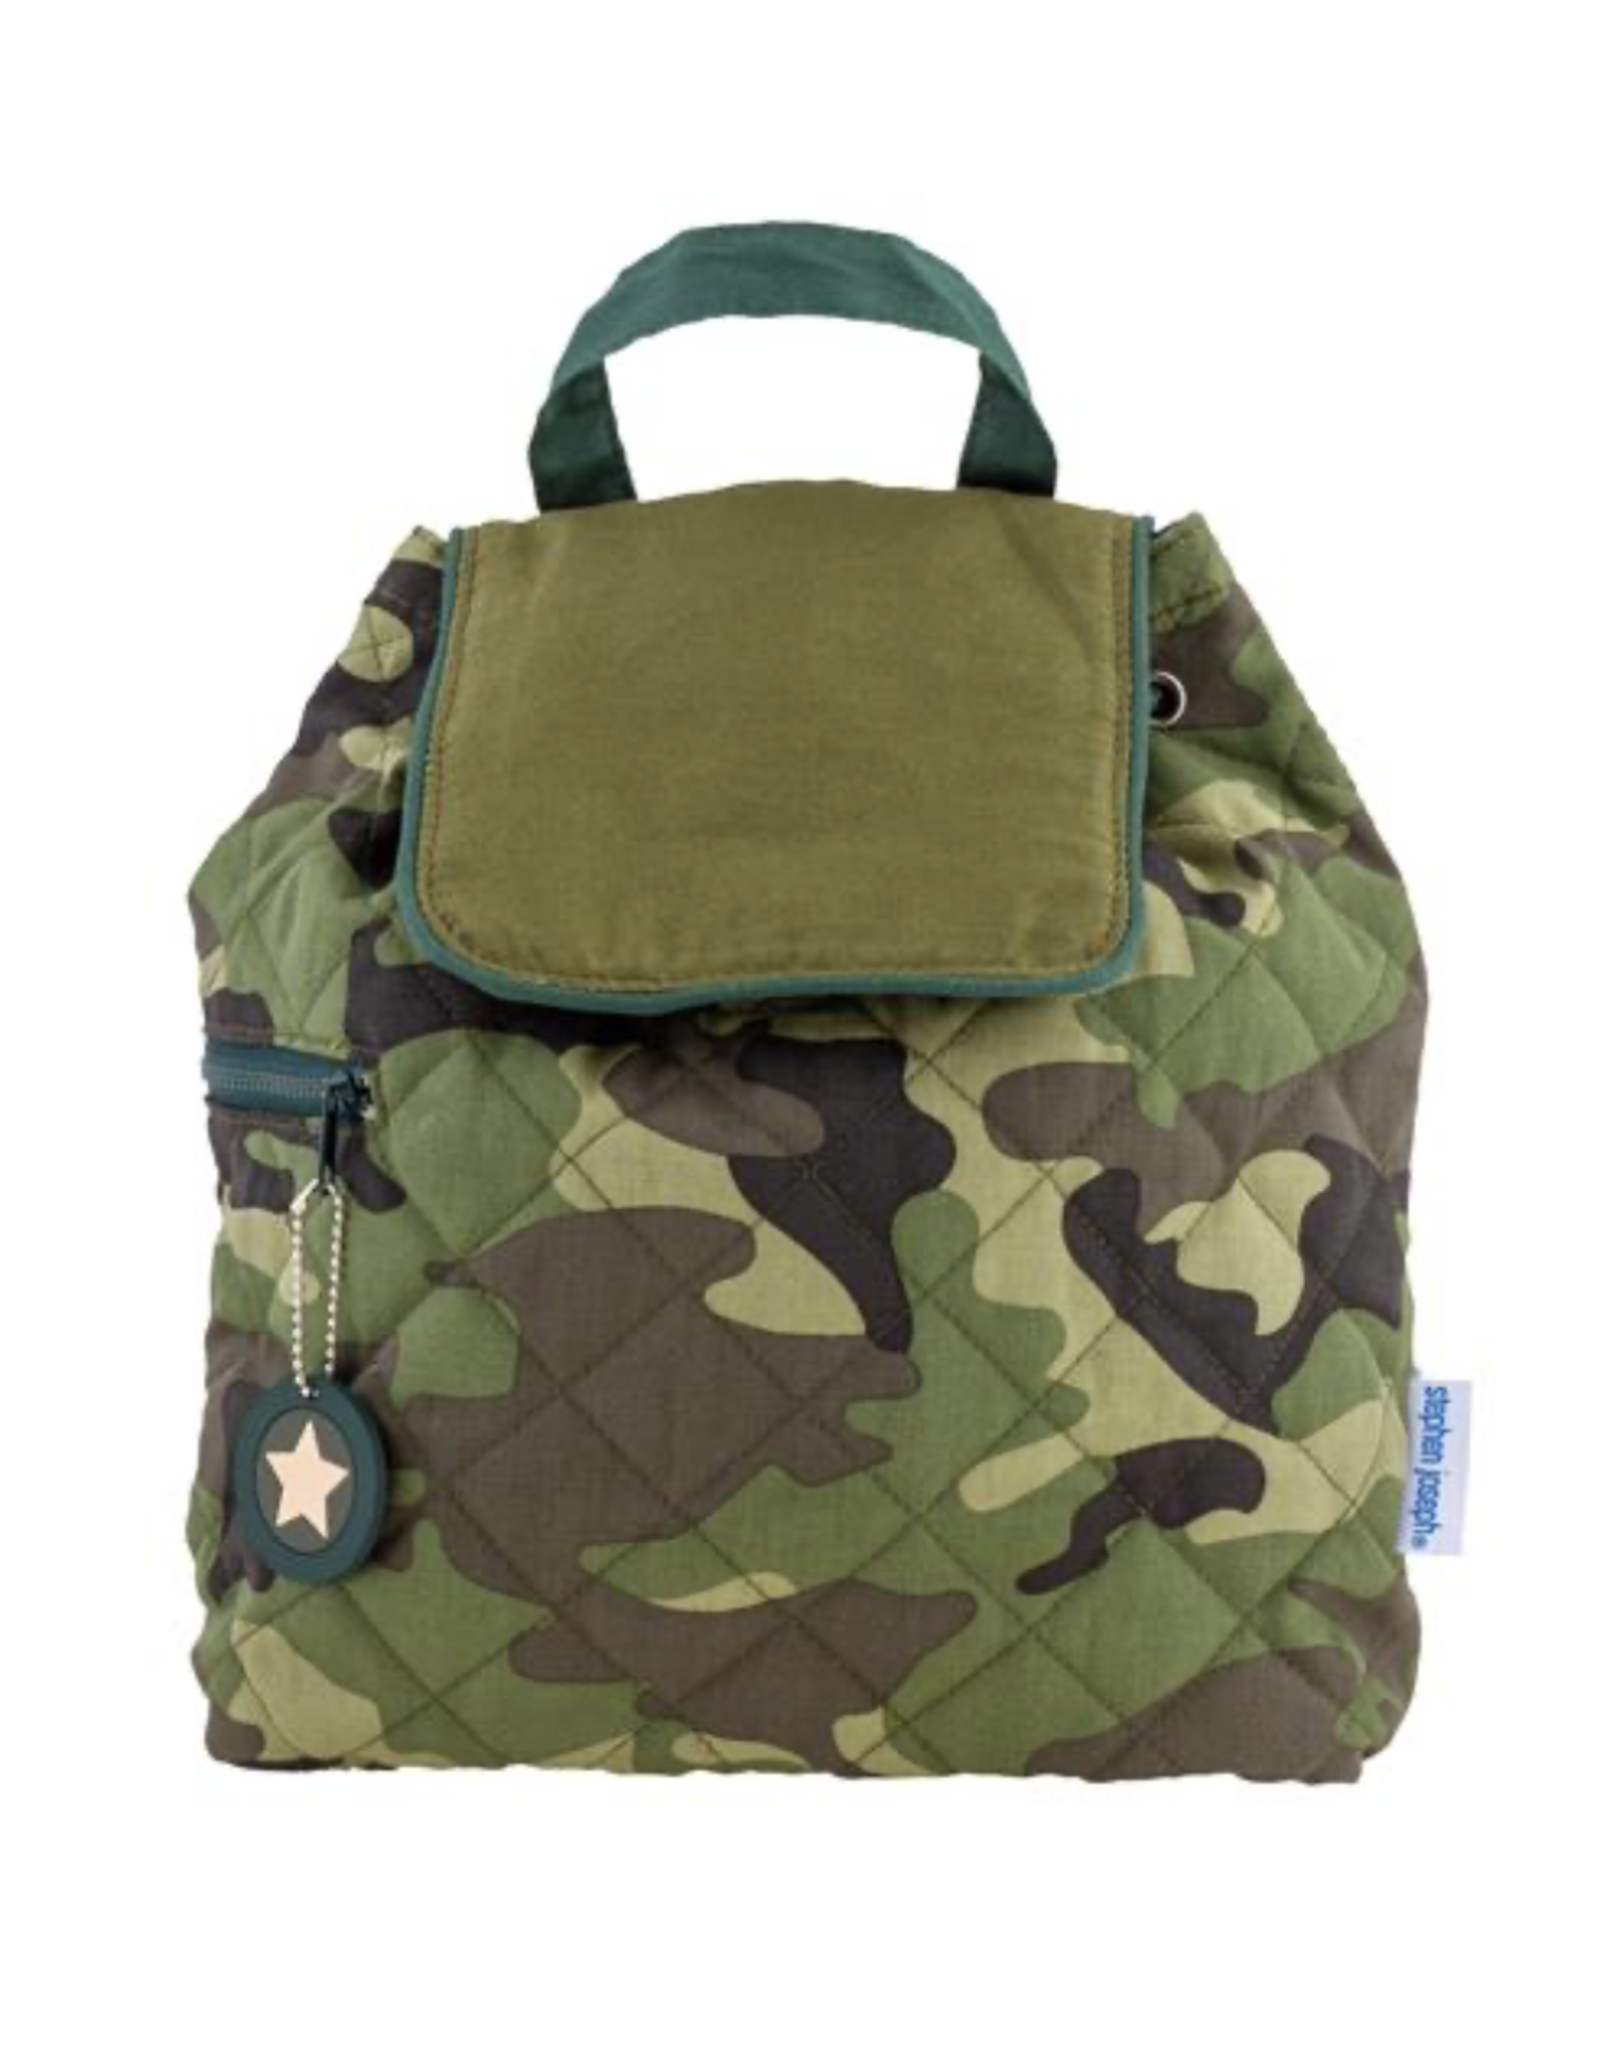 Stephen Joseph Backpack Quilted Camo S20